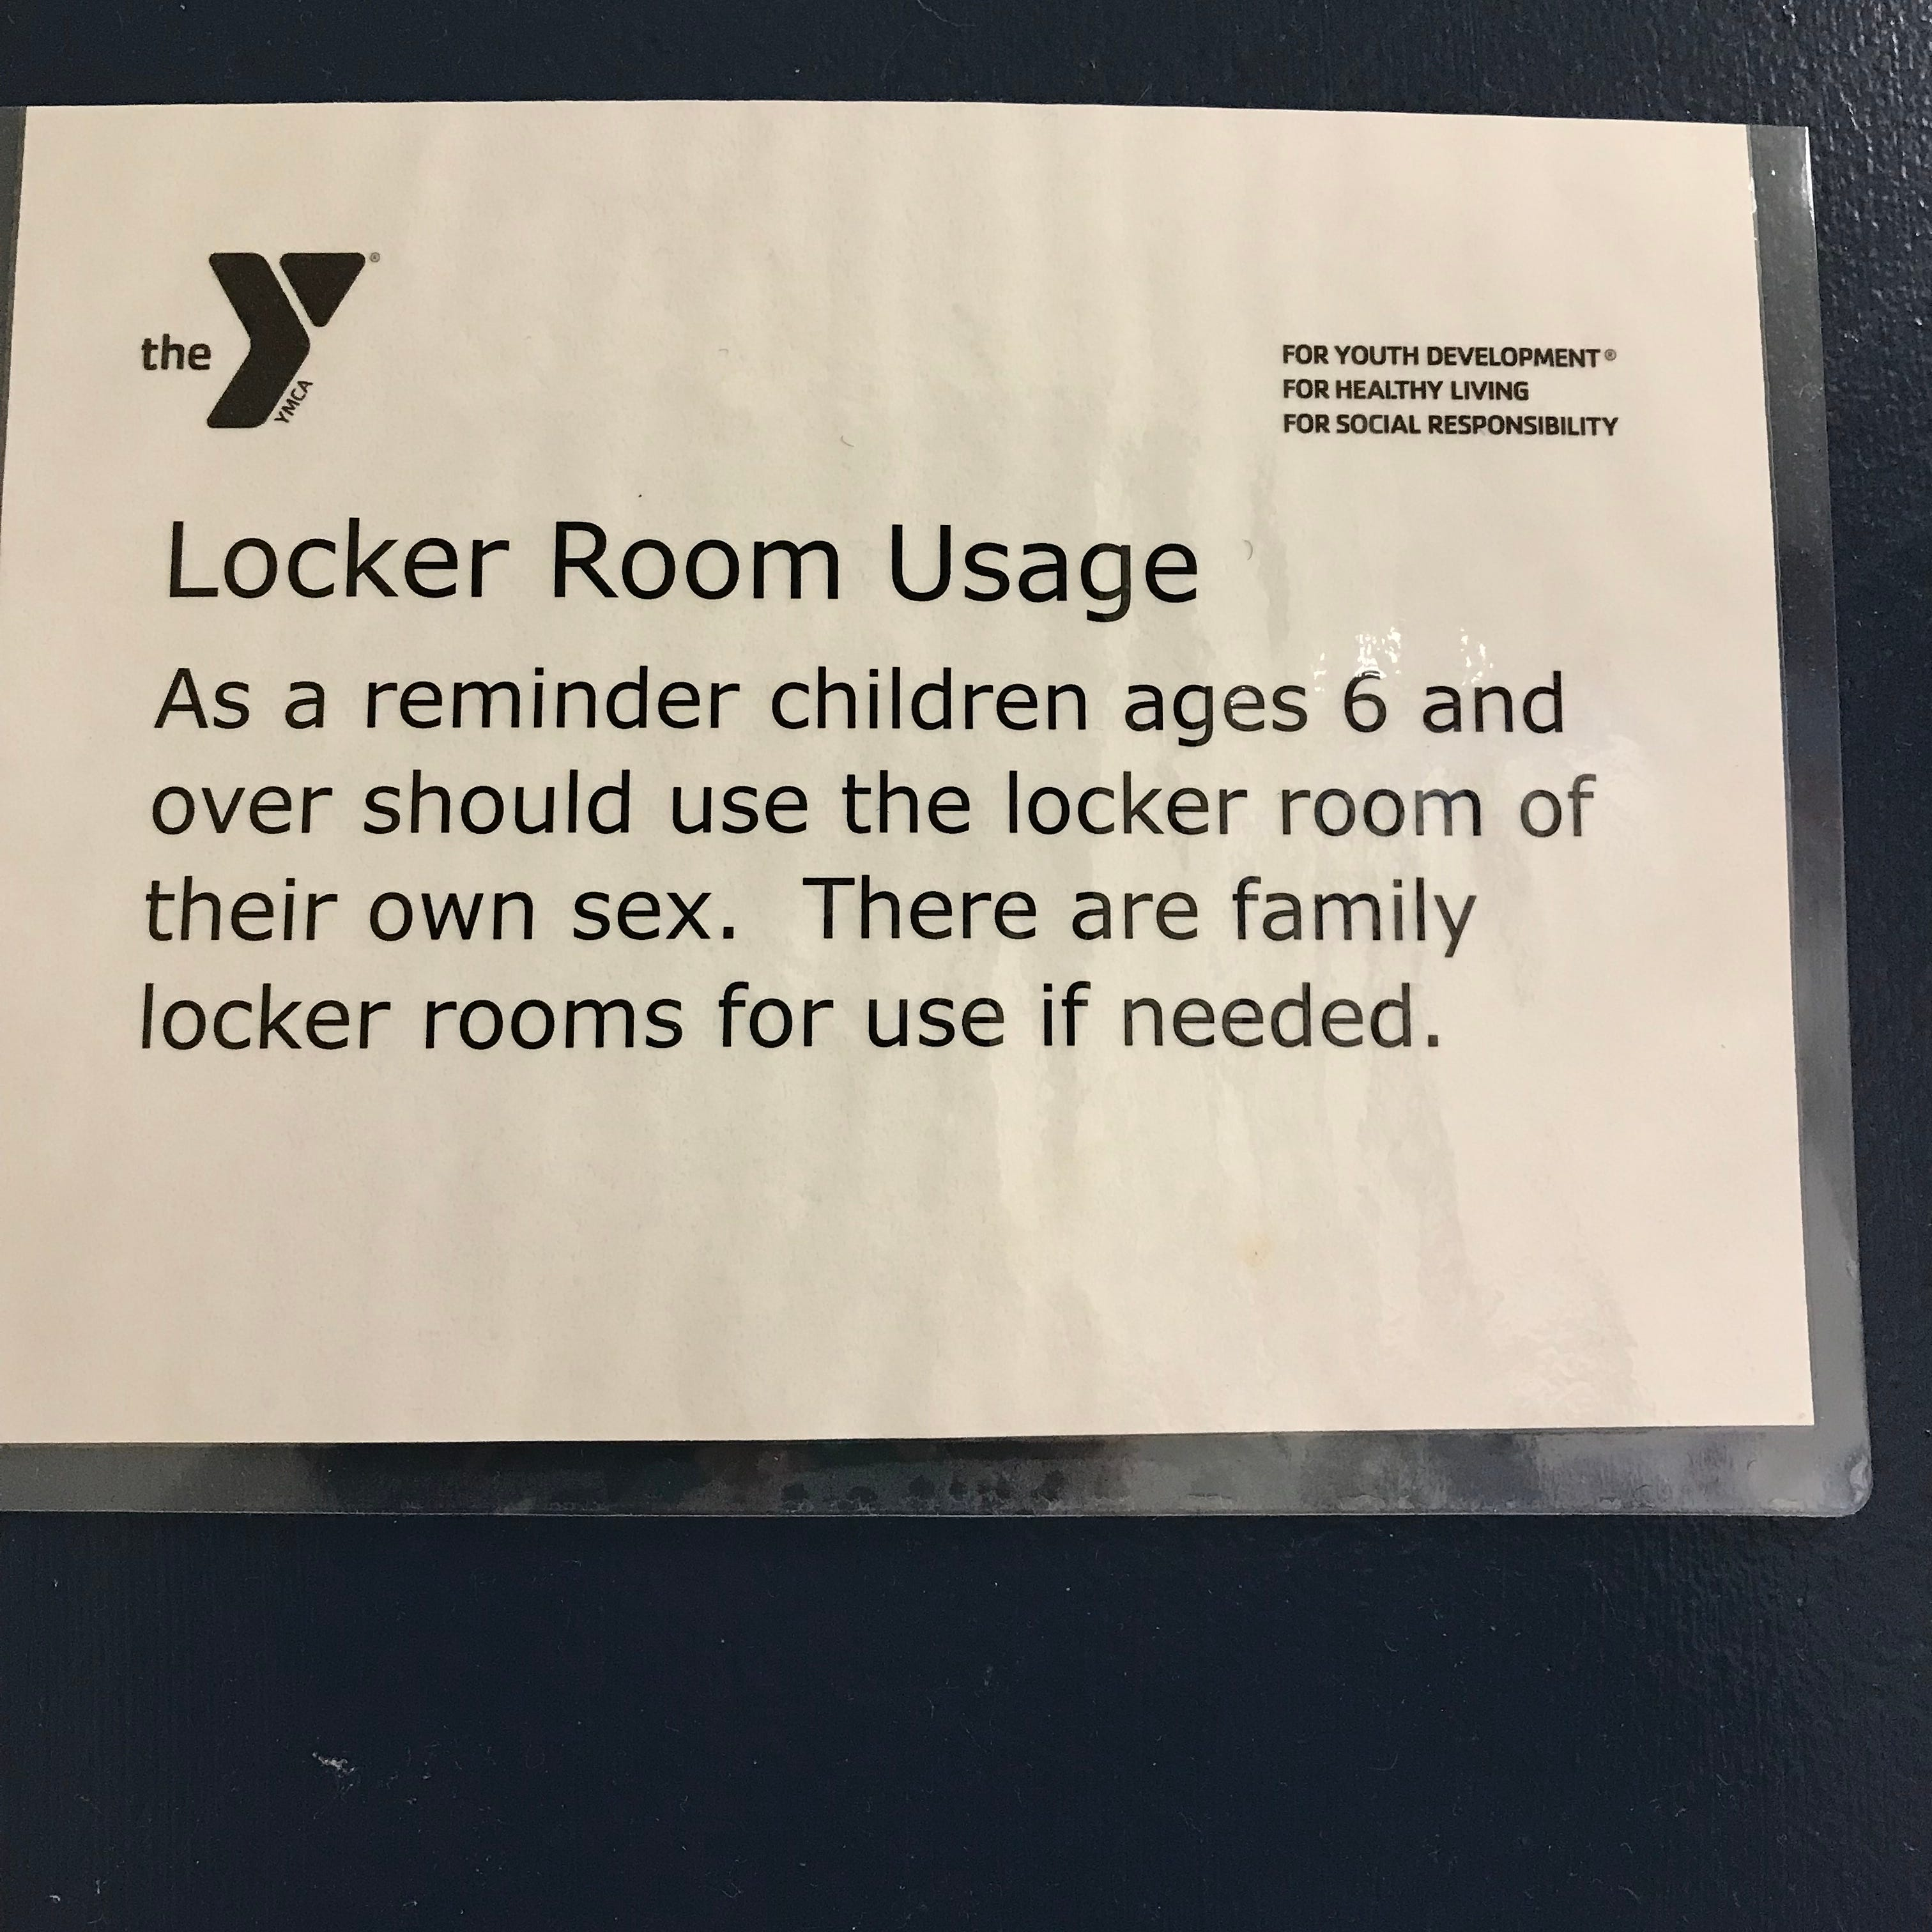 Putnam: Do 6-year-olds belong in the locker rooms of adults of the opposite sex?